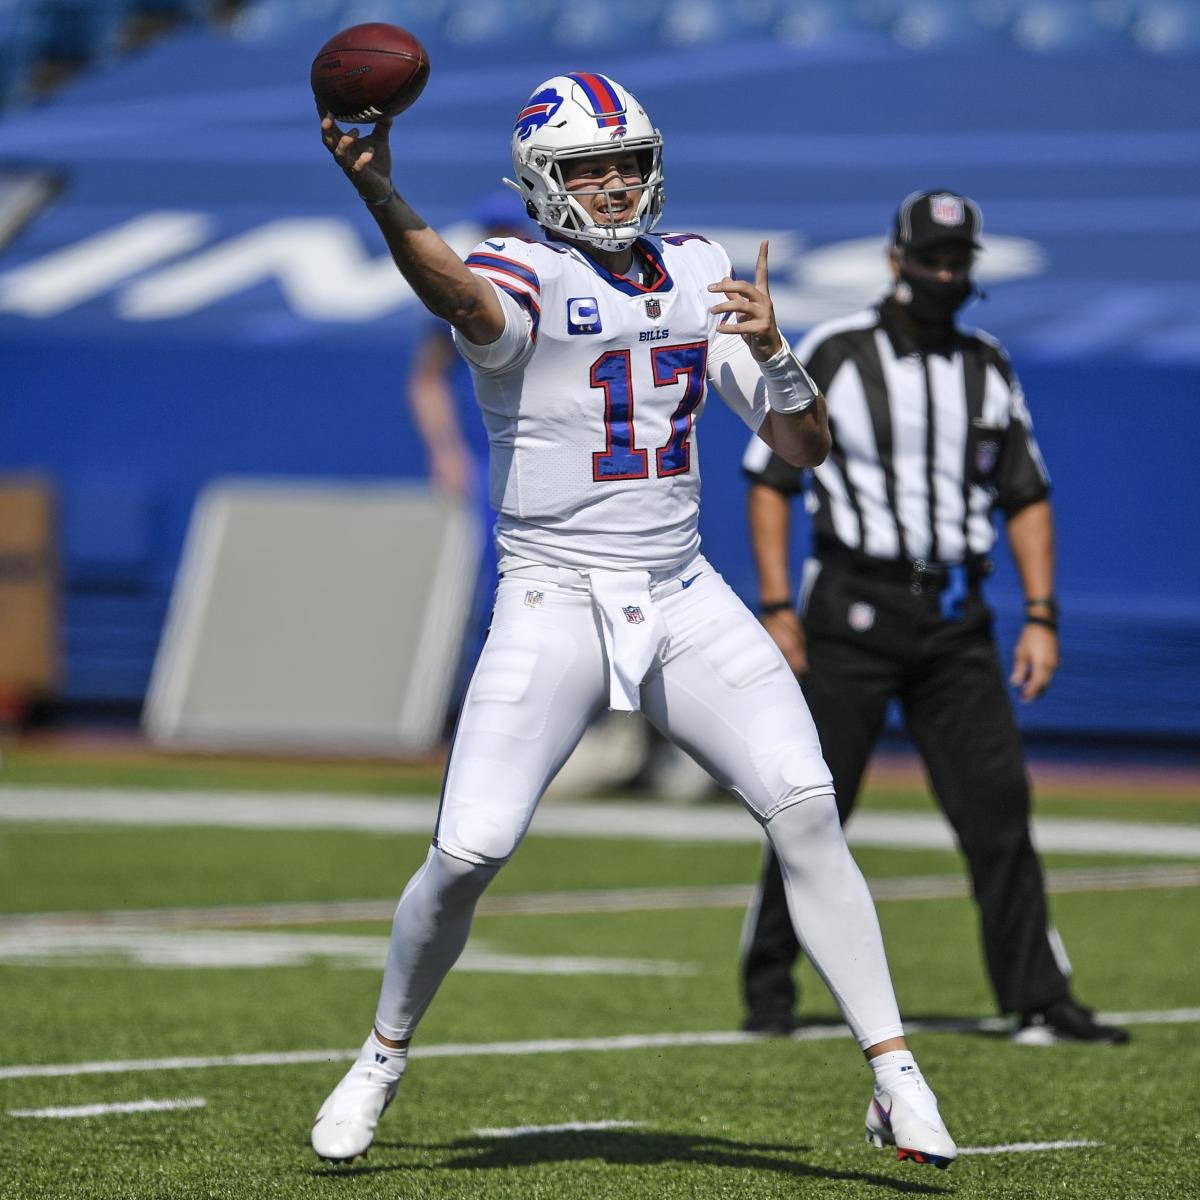 NFL Week 4 Picks: Upcoming Odds and Predictions for Full Schedule